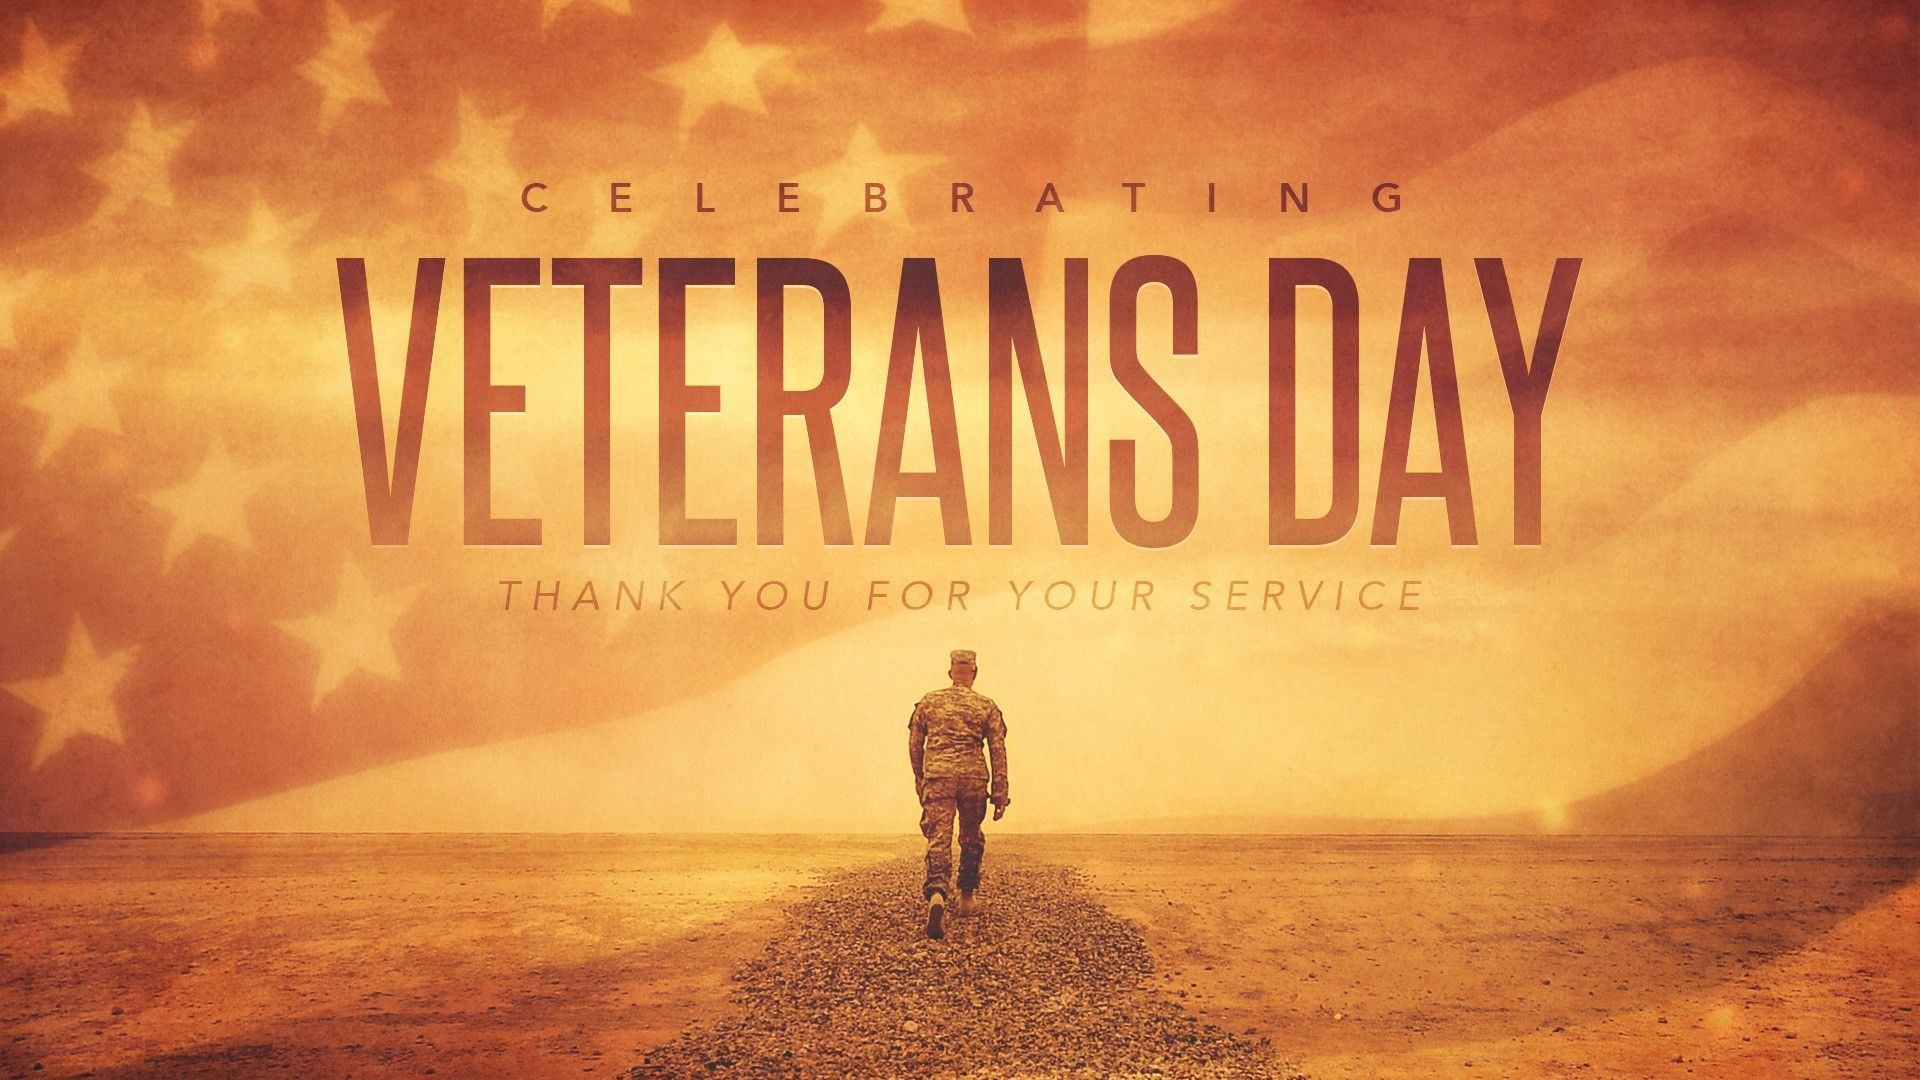 Download Veterans Day Wallpapers Gallery